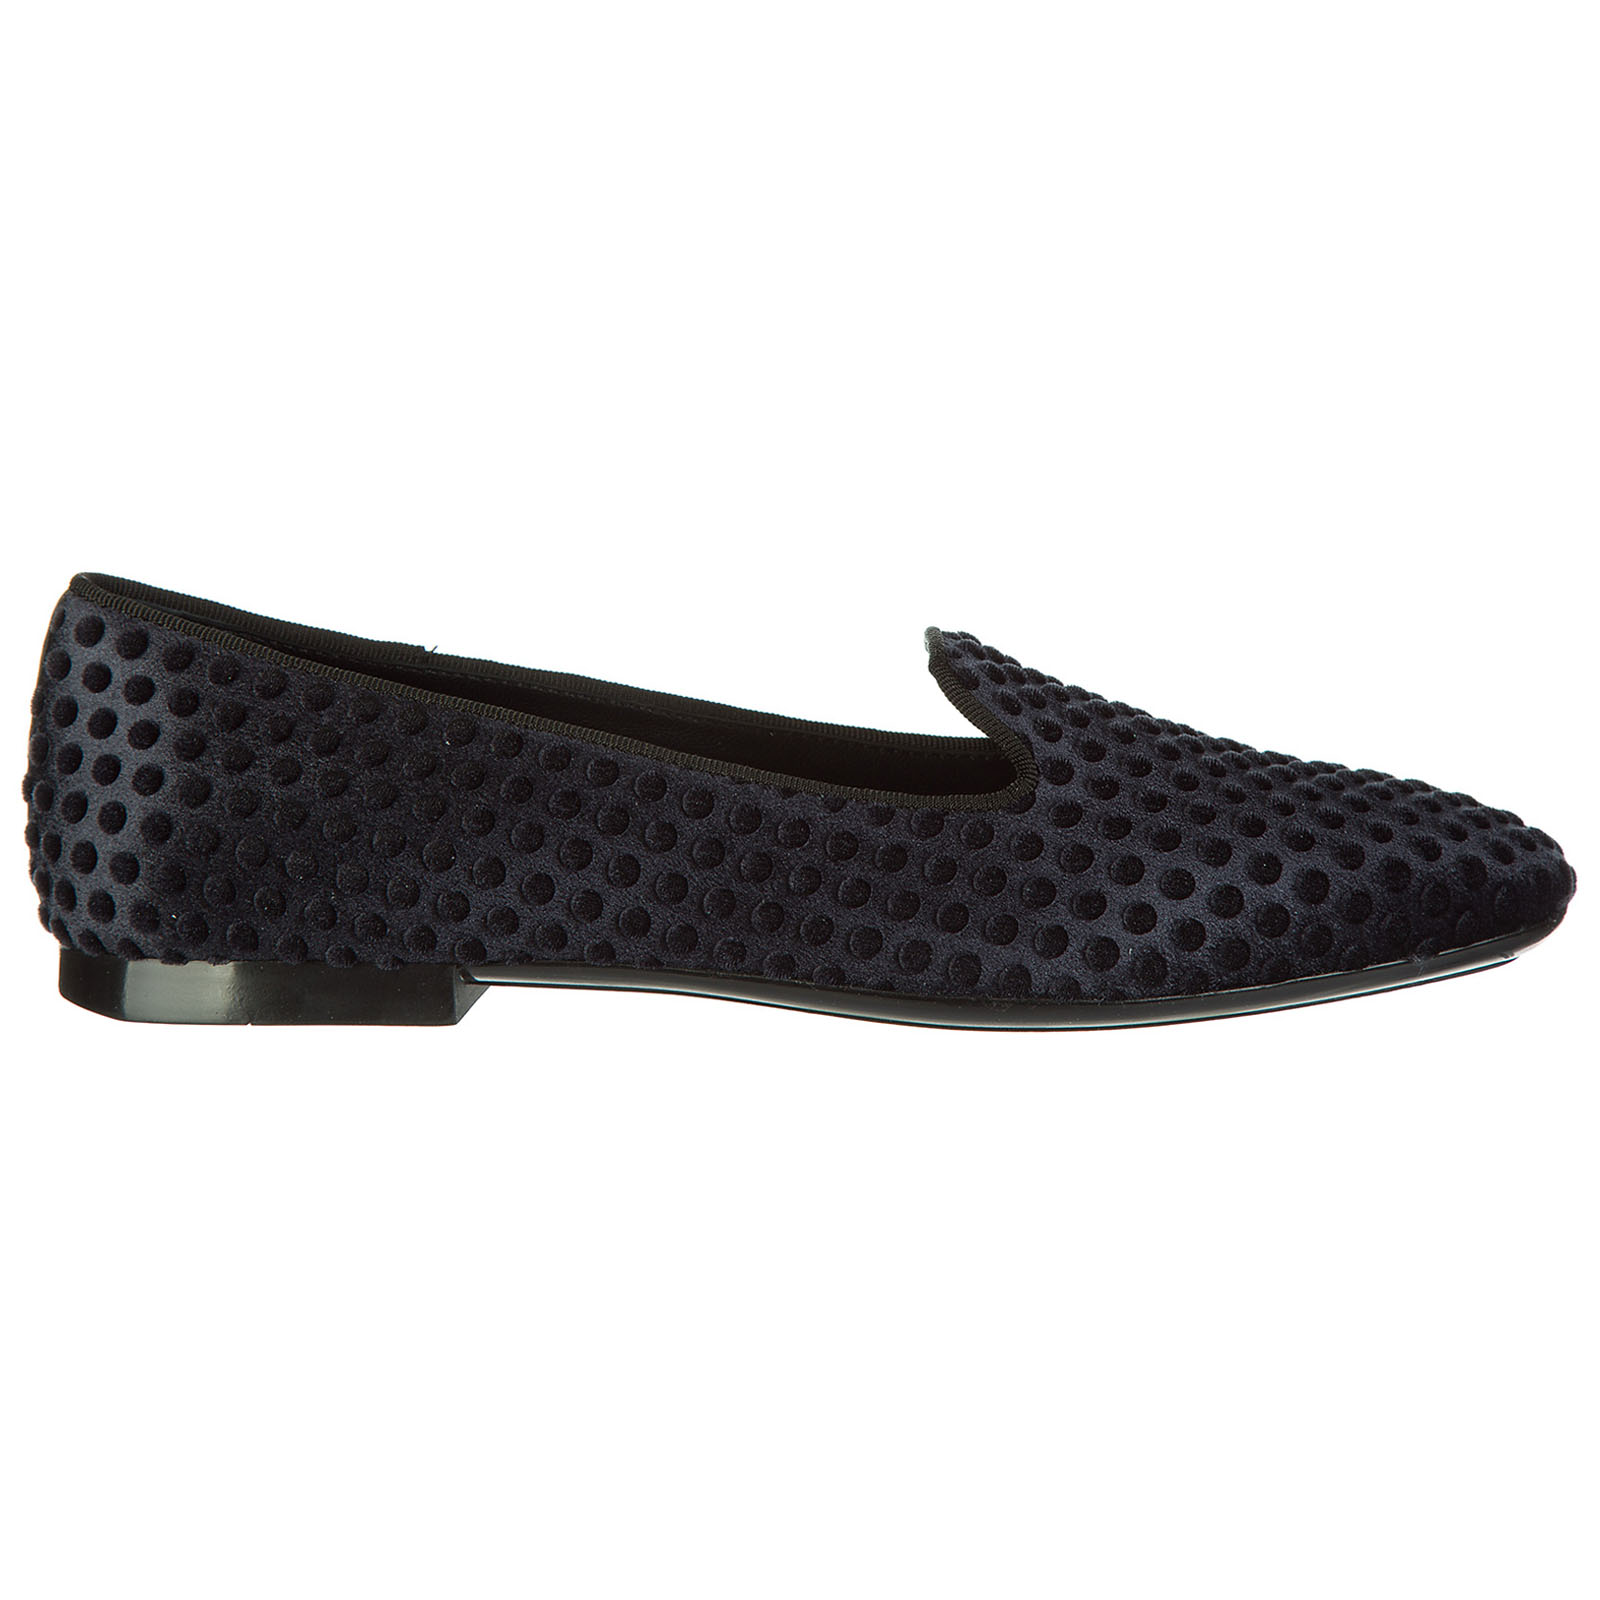 Damen wildleder slip on slipper sneakers